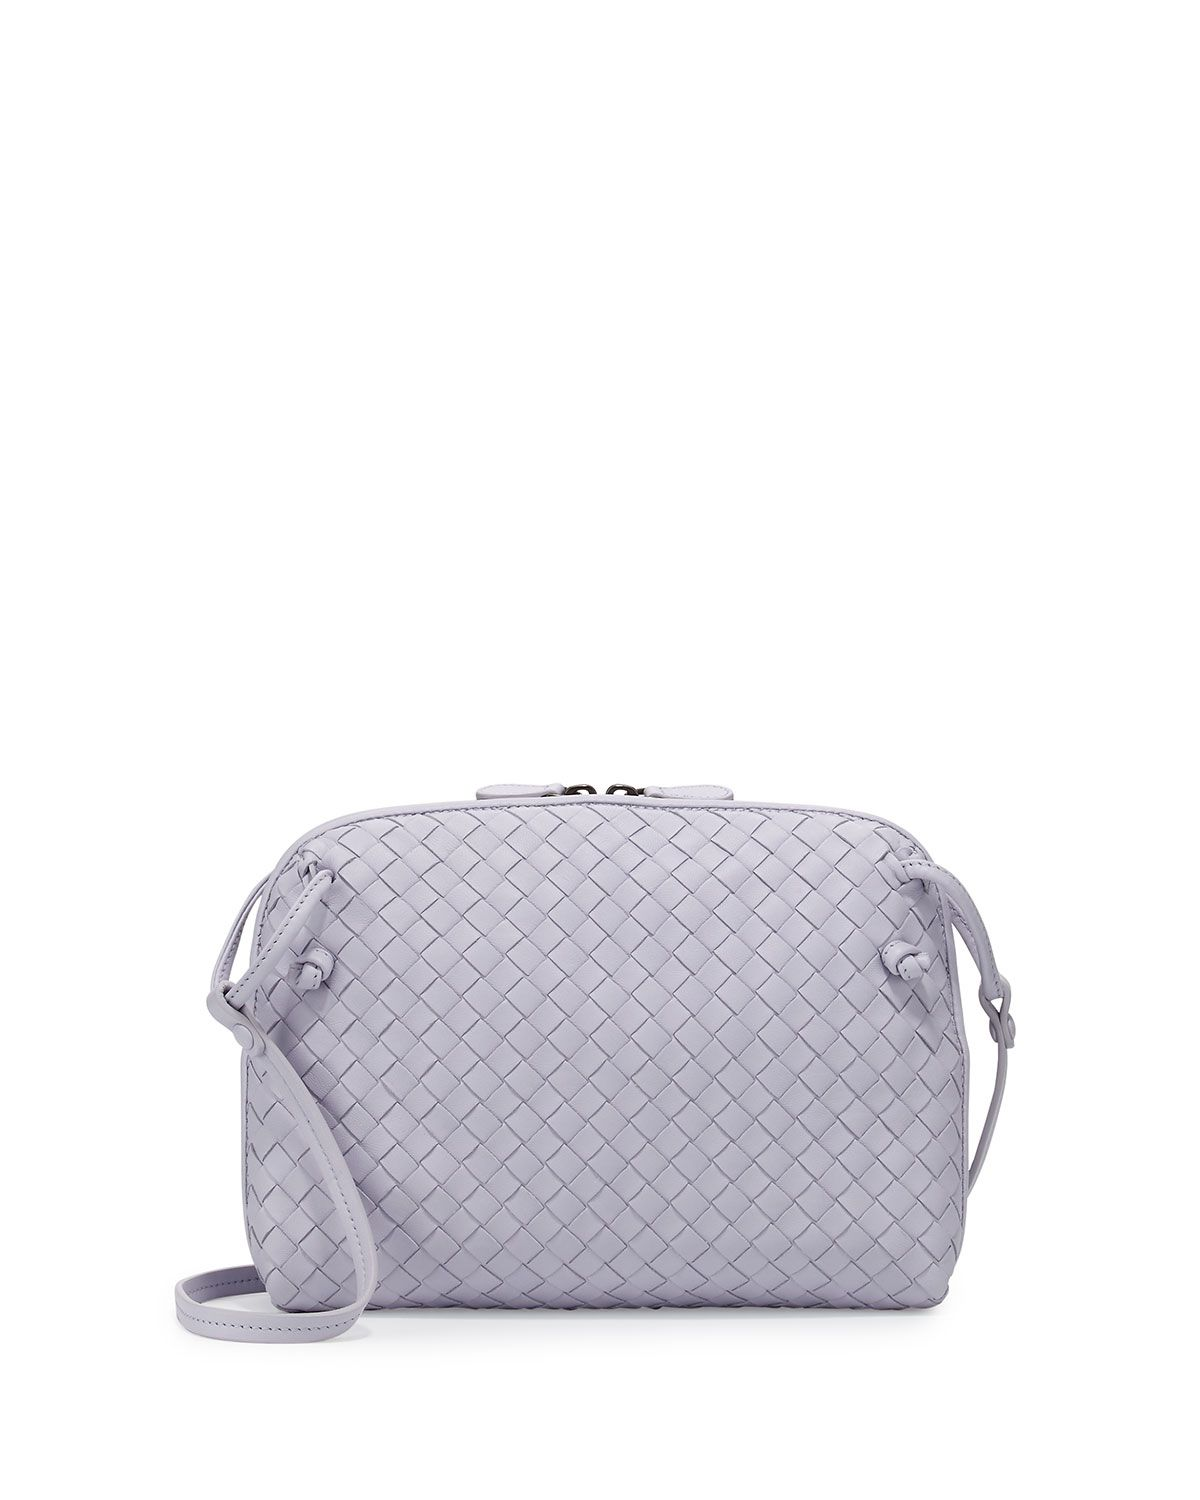 Intrecciato Small Zip Crossbody Bag 6bc6f5cf942bc